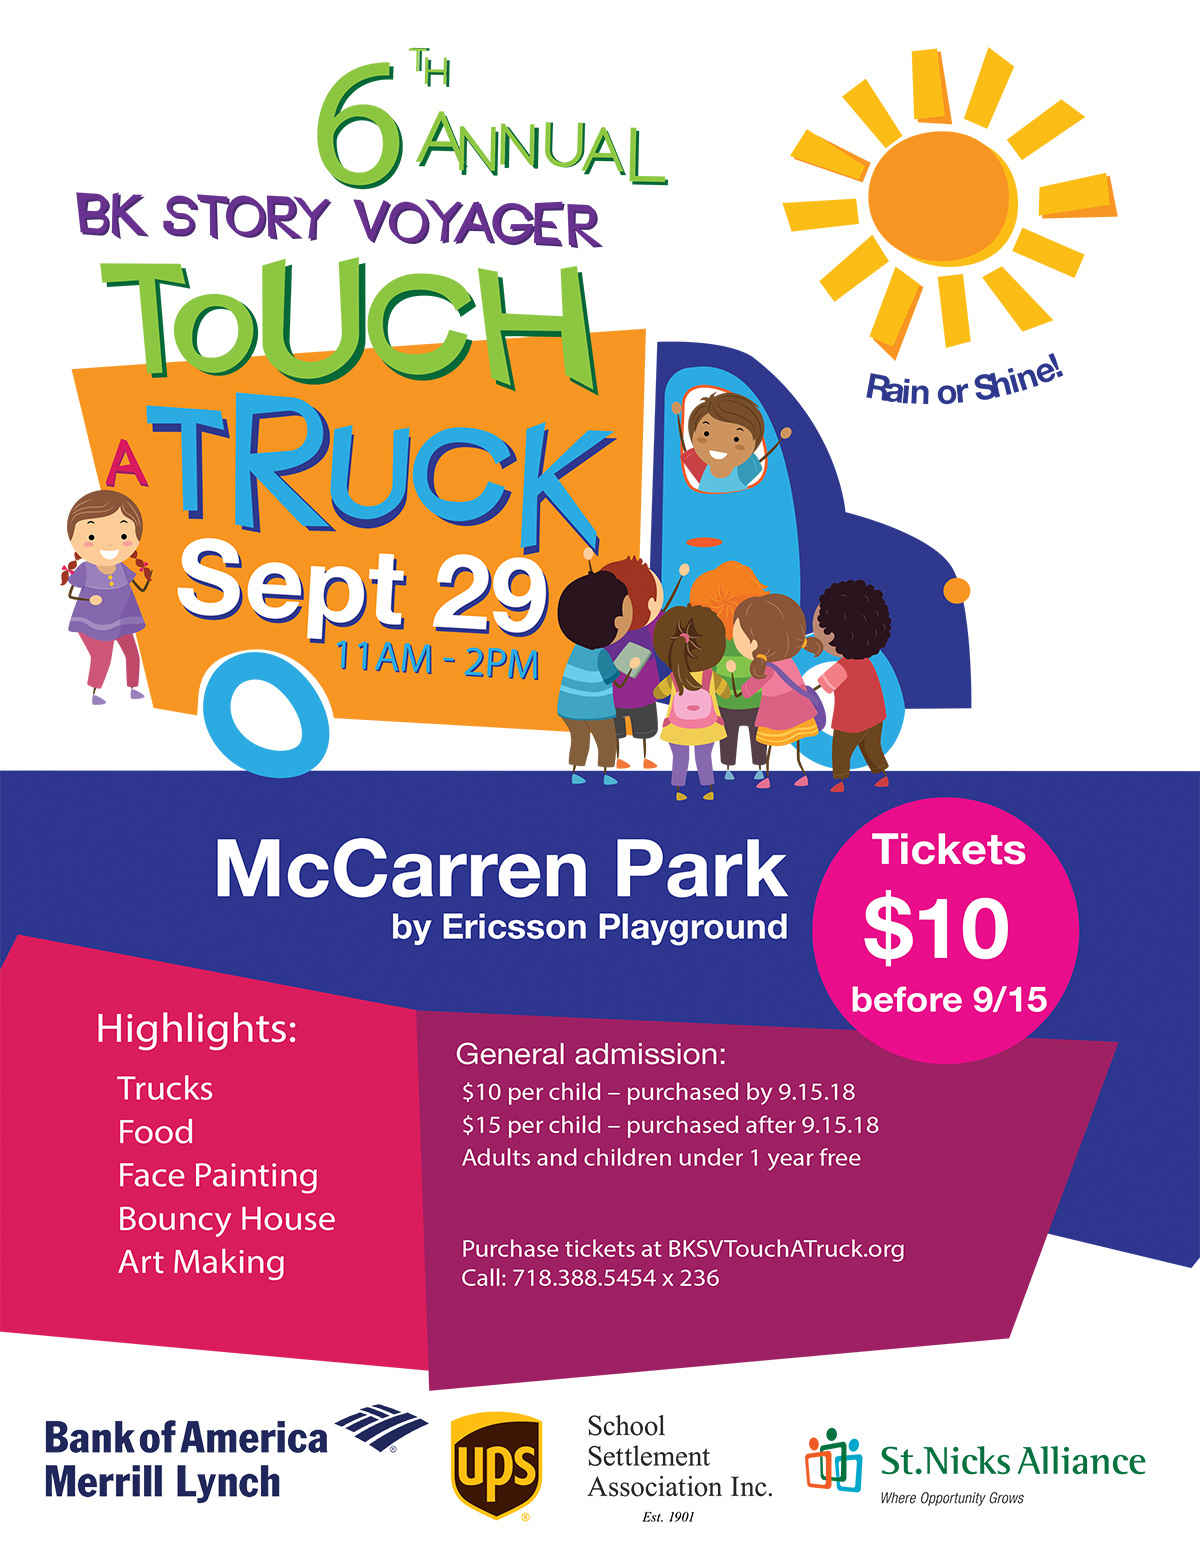 6th Annual BK Story Voyager Touch a Truck! - Save $5 on Tickets has been extended until 9/28! image